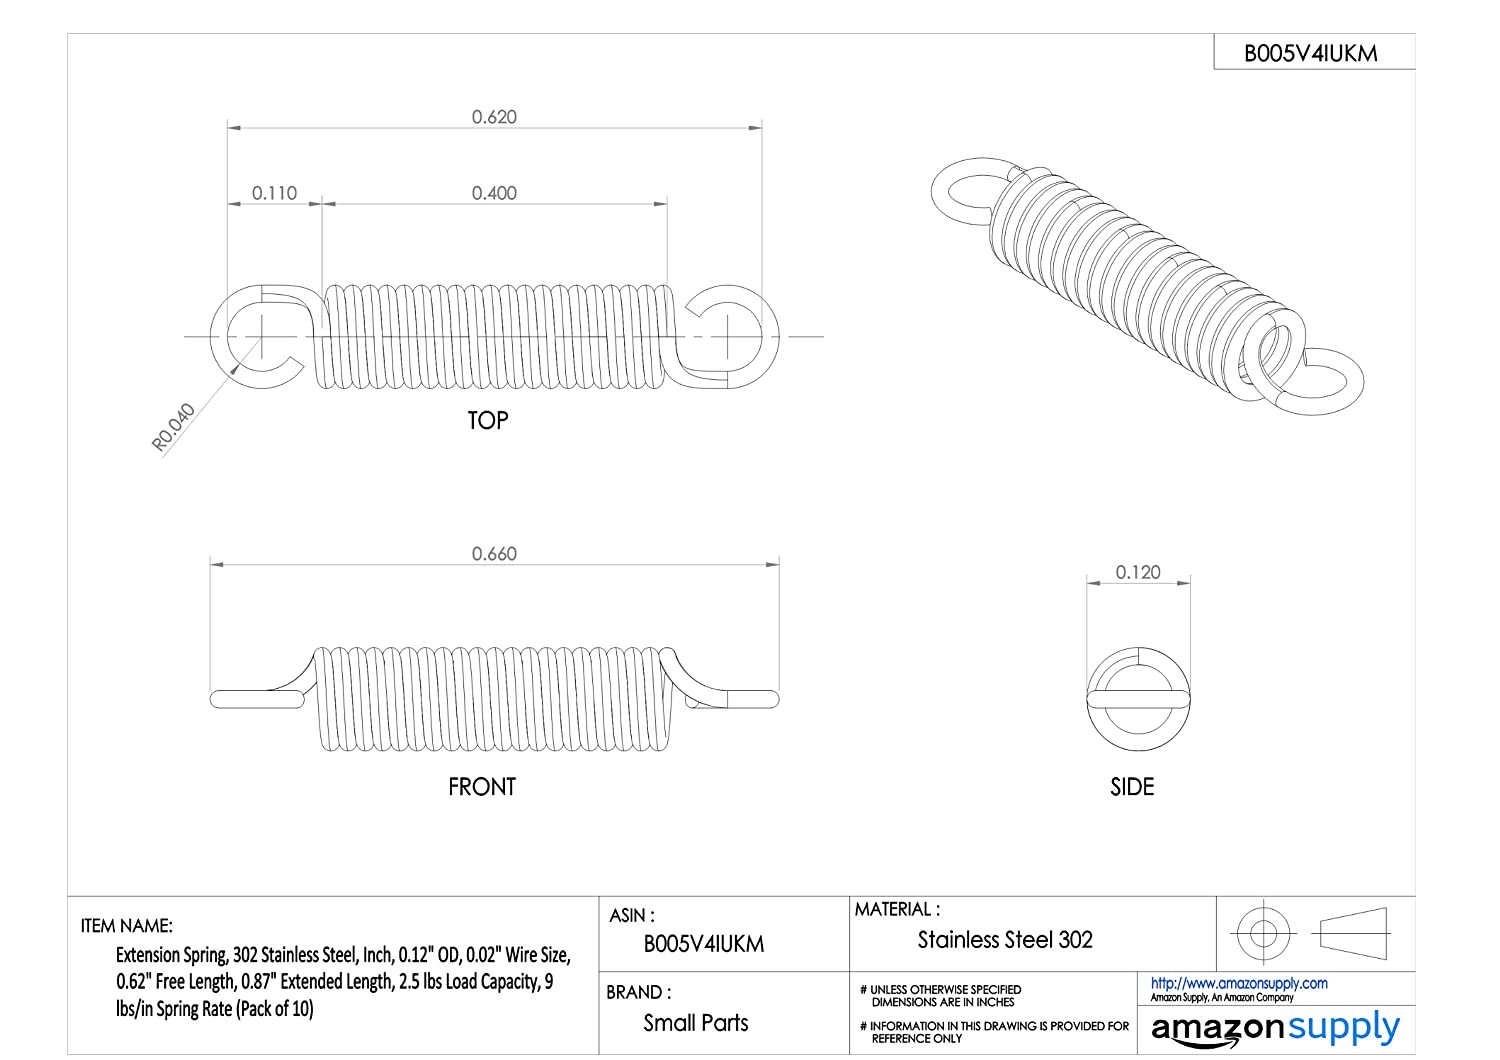 Extension Spring 12.58 lbs//in Spring Rate Inch Pack of 10 0.68 Extended Length 0.12 OD 0.5 Free Length 2.5 lbs Load Capacity 302 Stainless Steel 0.02 Wire Size